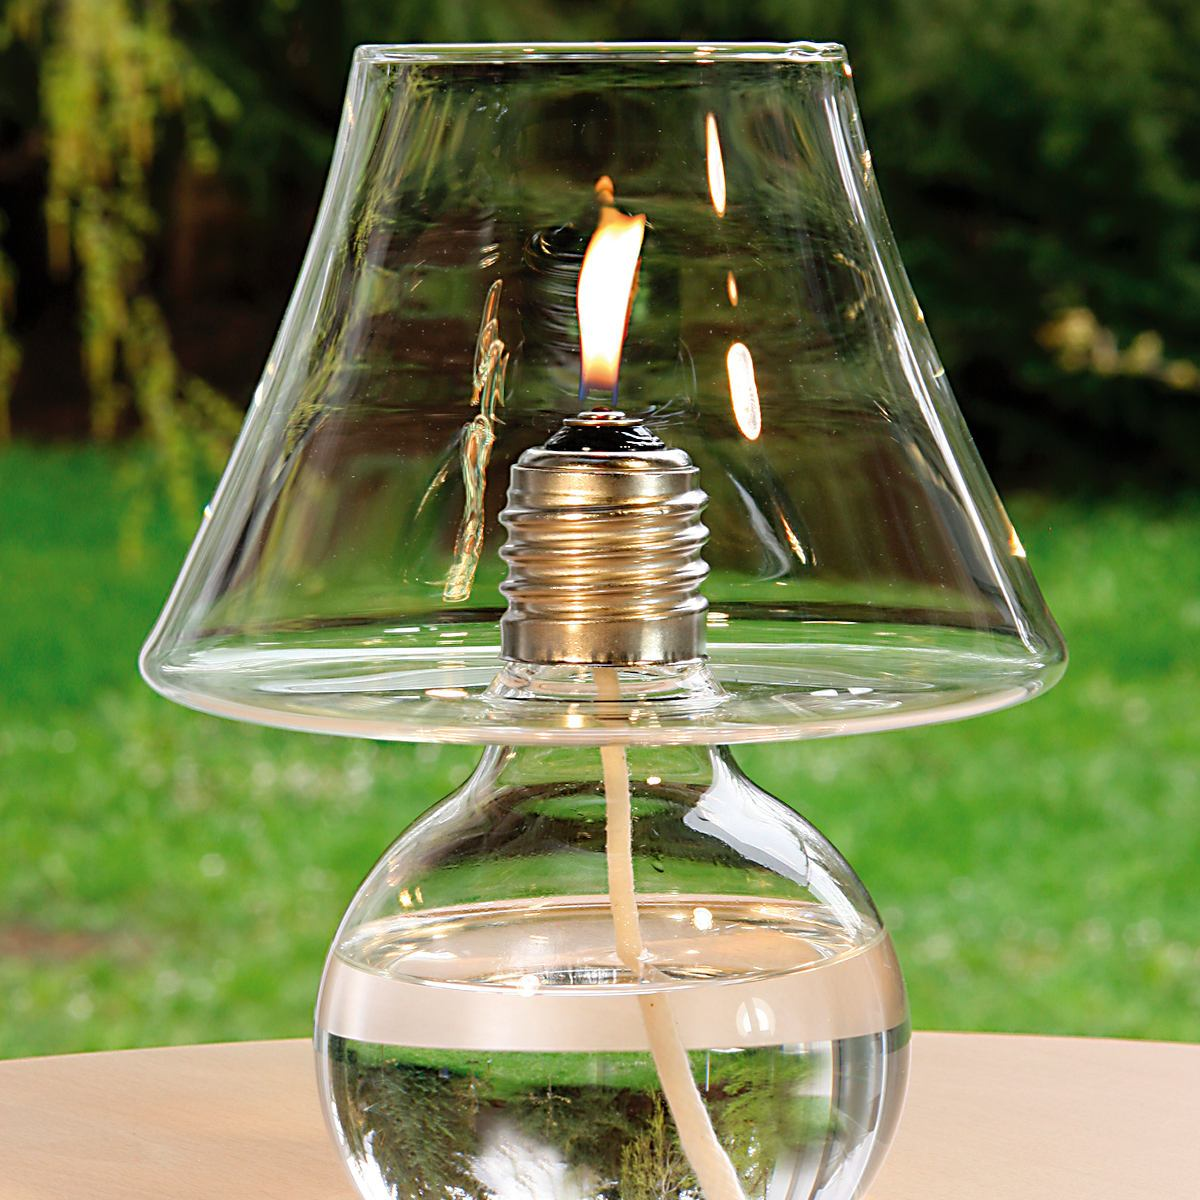 Quirky Table Oil Lamp made of Glass